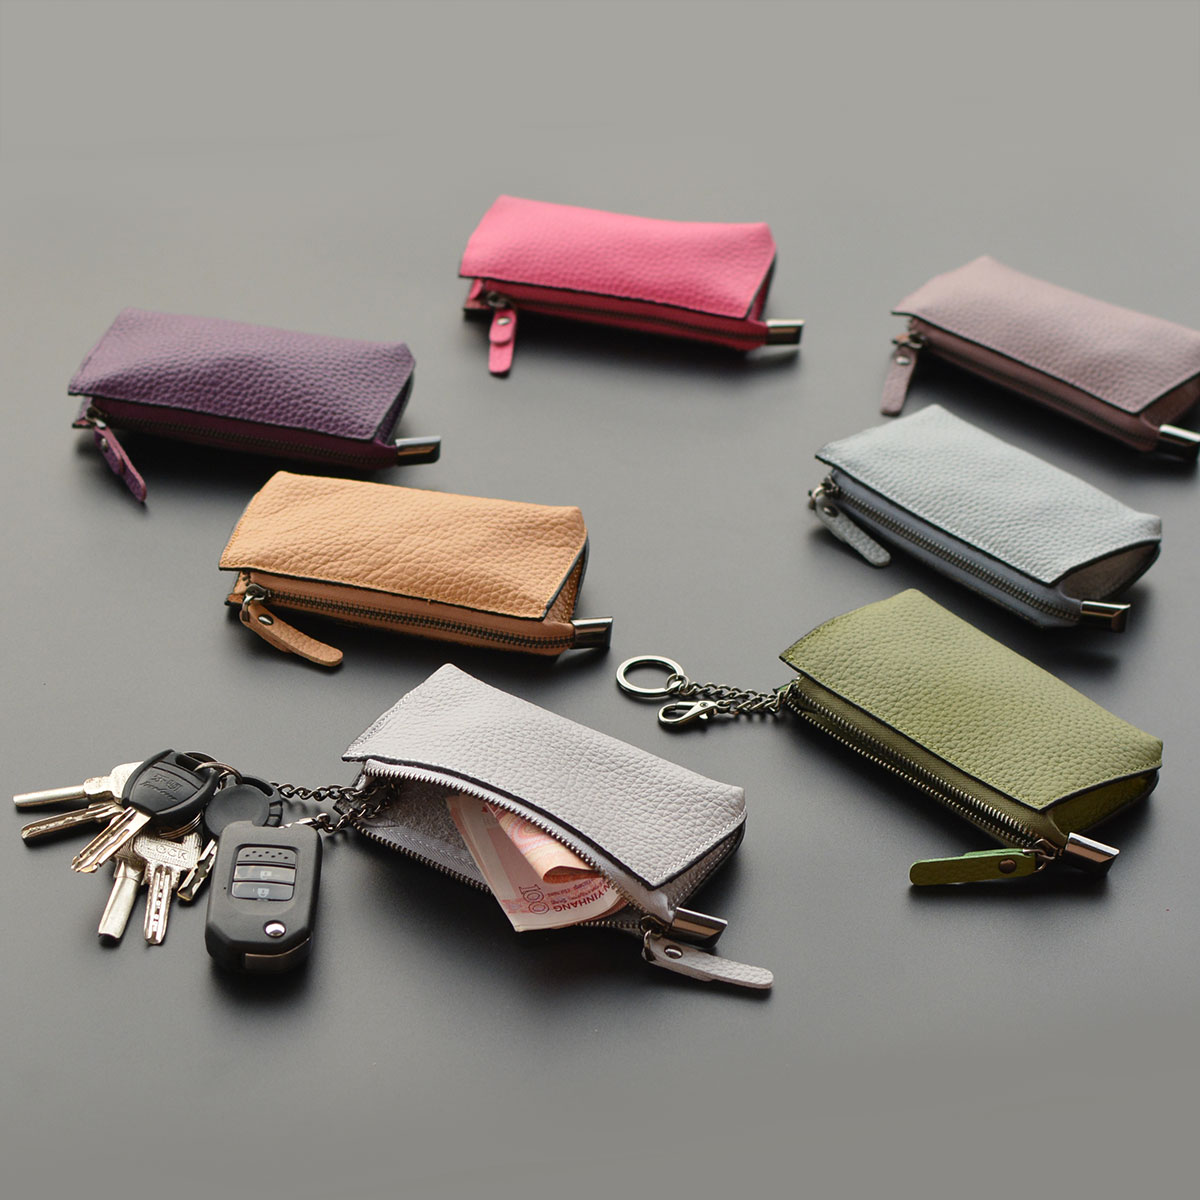 Porte Cle Security Door With Key Chain Receive A Multi-functional Leather Cowhide Han Edition Mini Zipper Bag Ladys Zero Purse